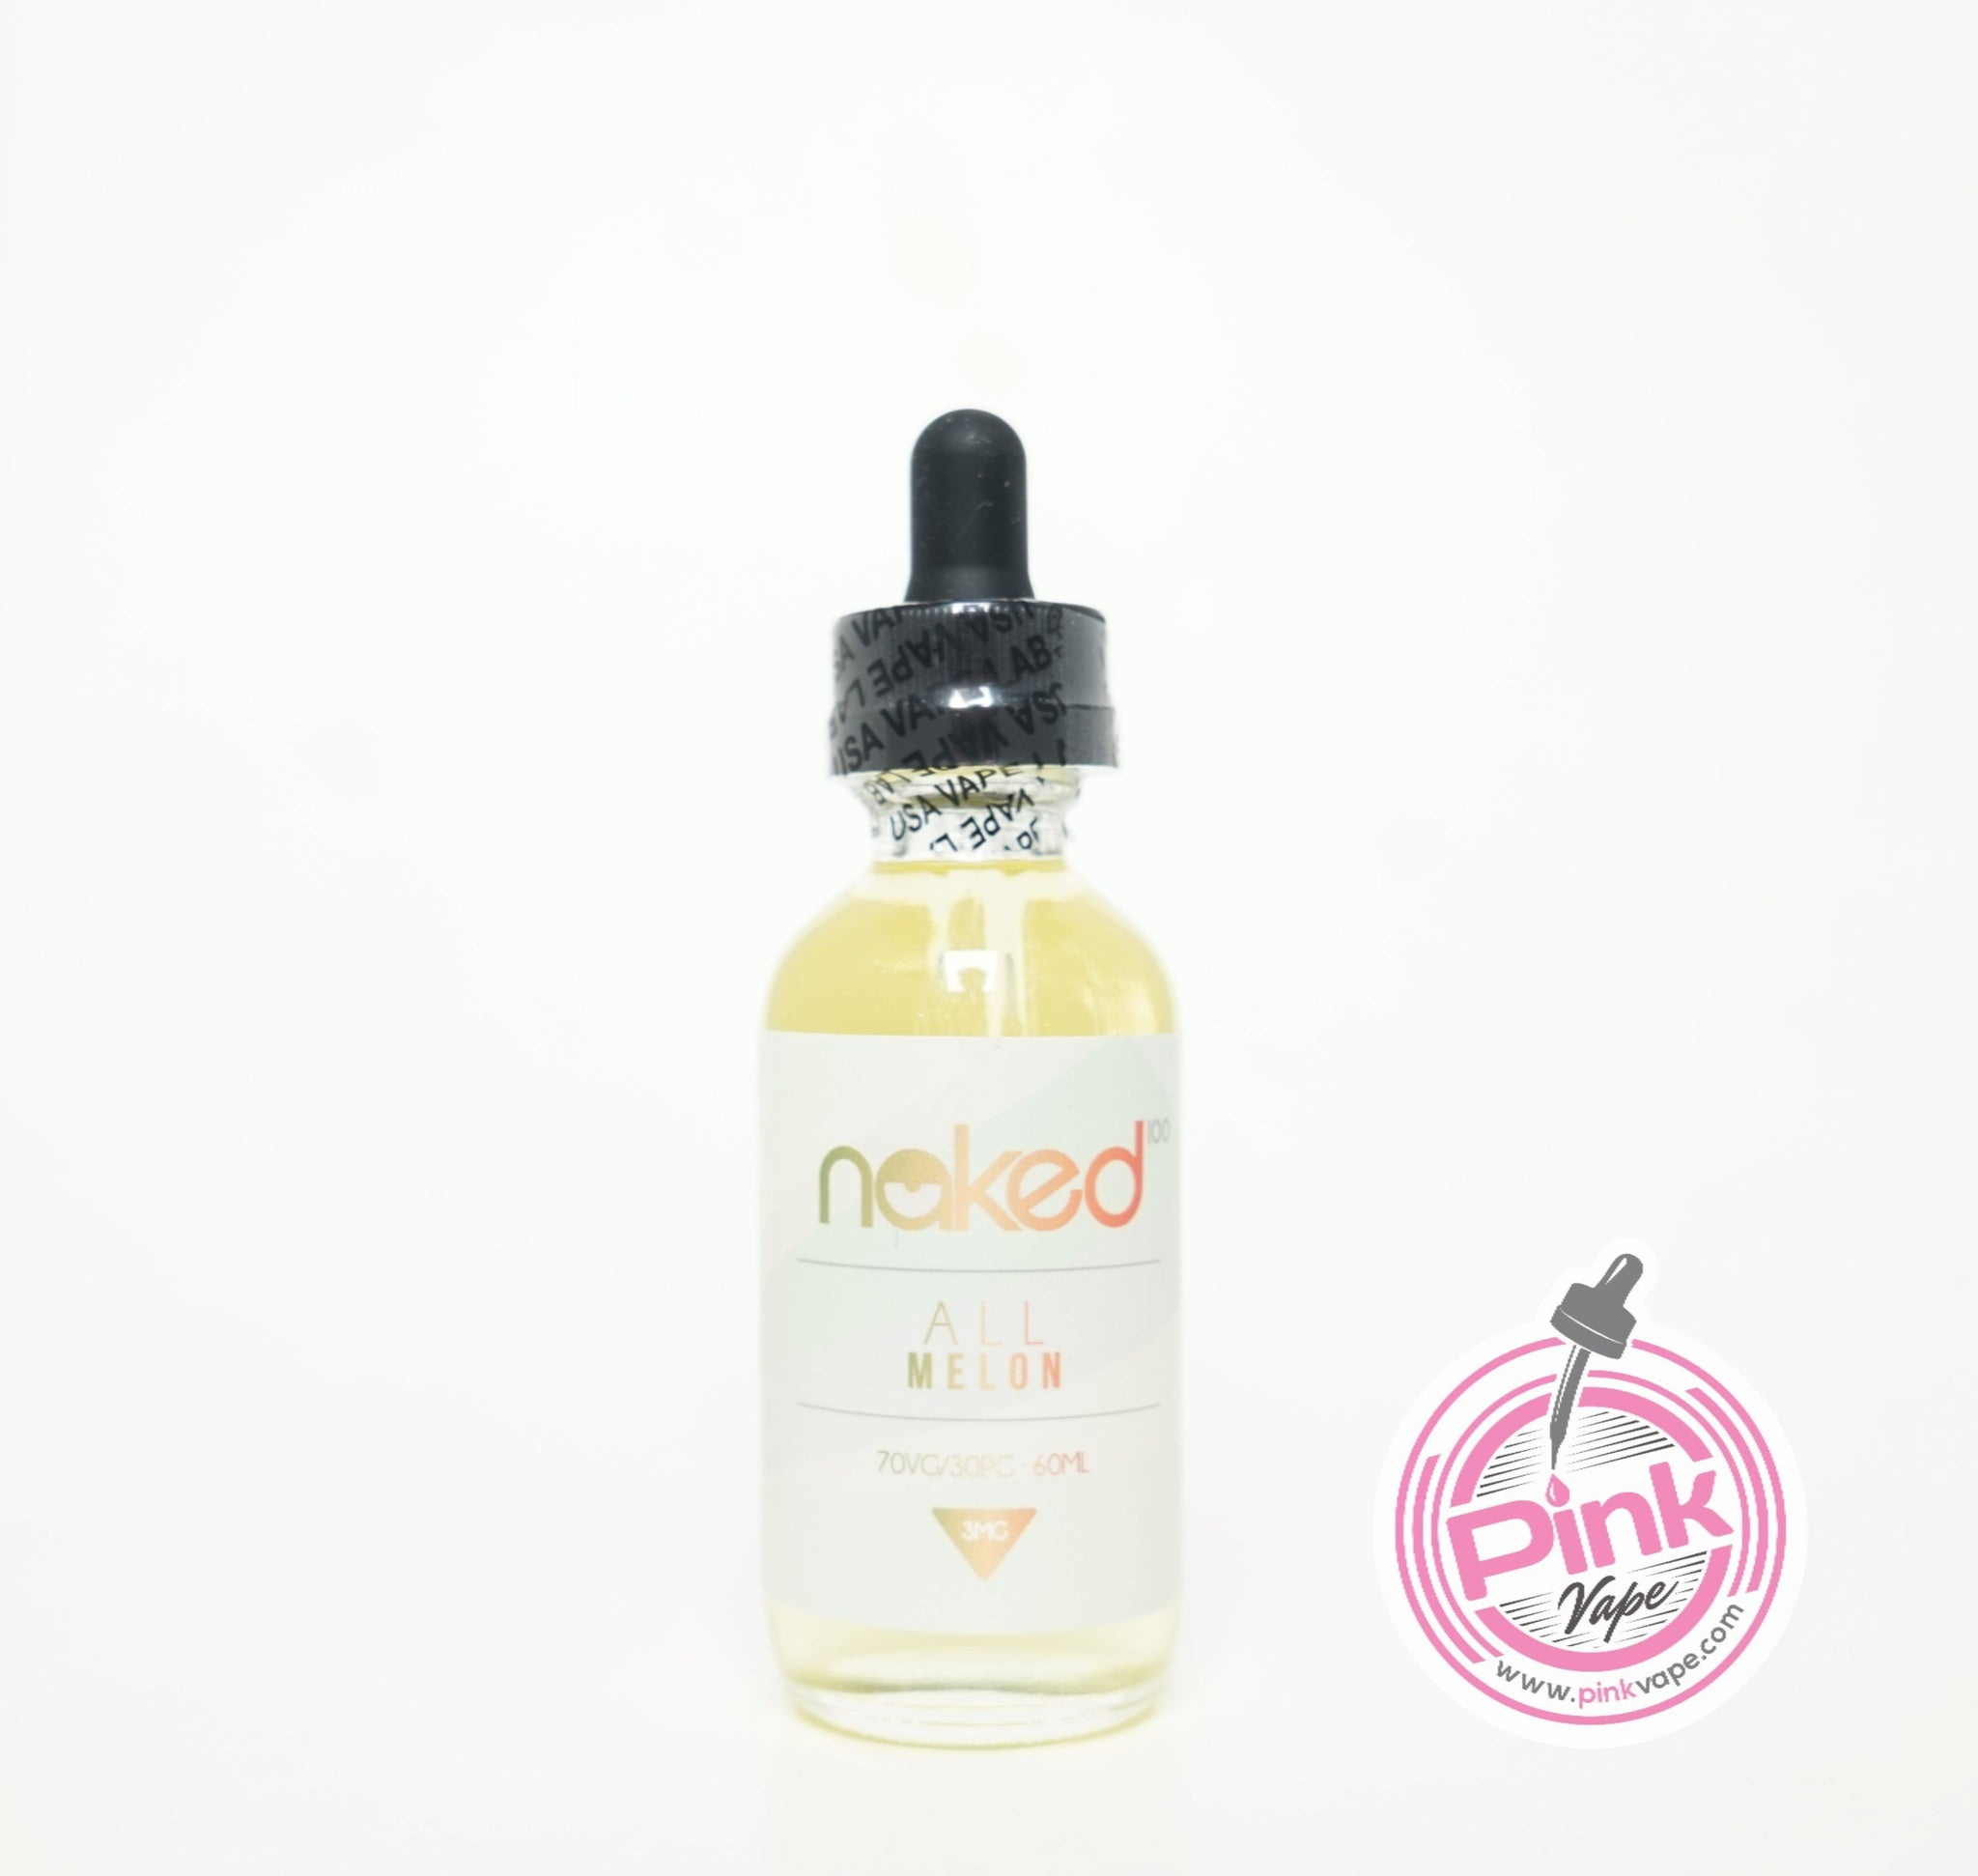 All Melon E liquid by Naked 100 60mL E Liquid